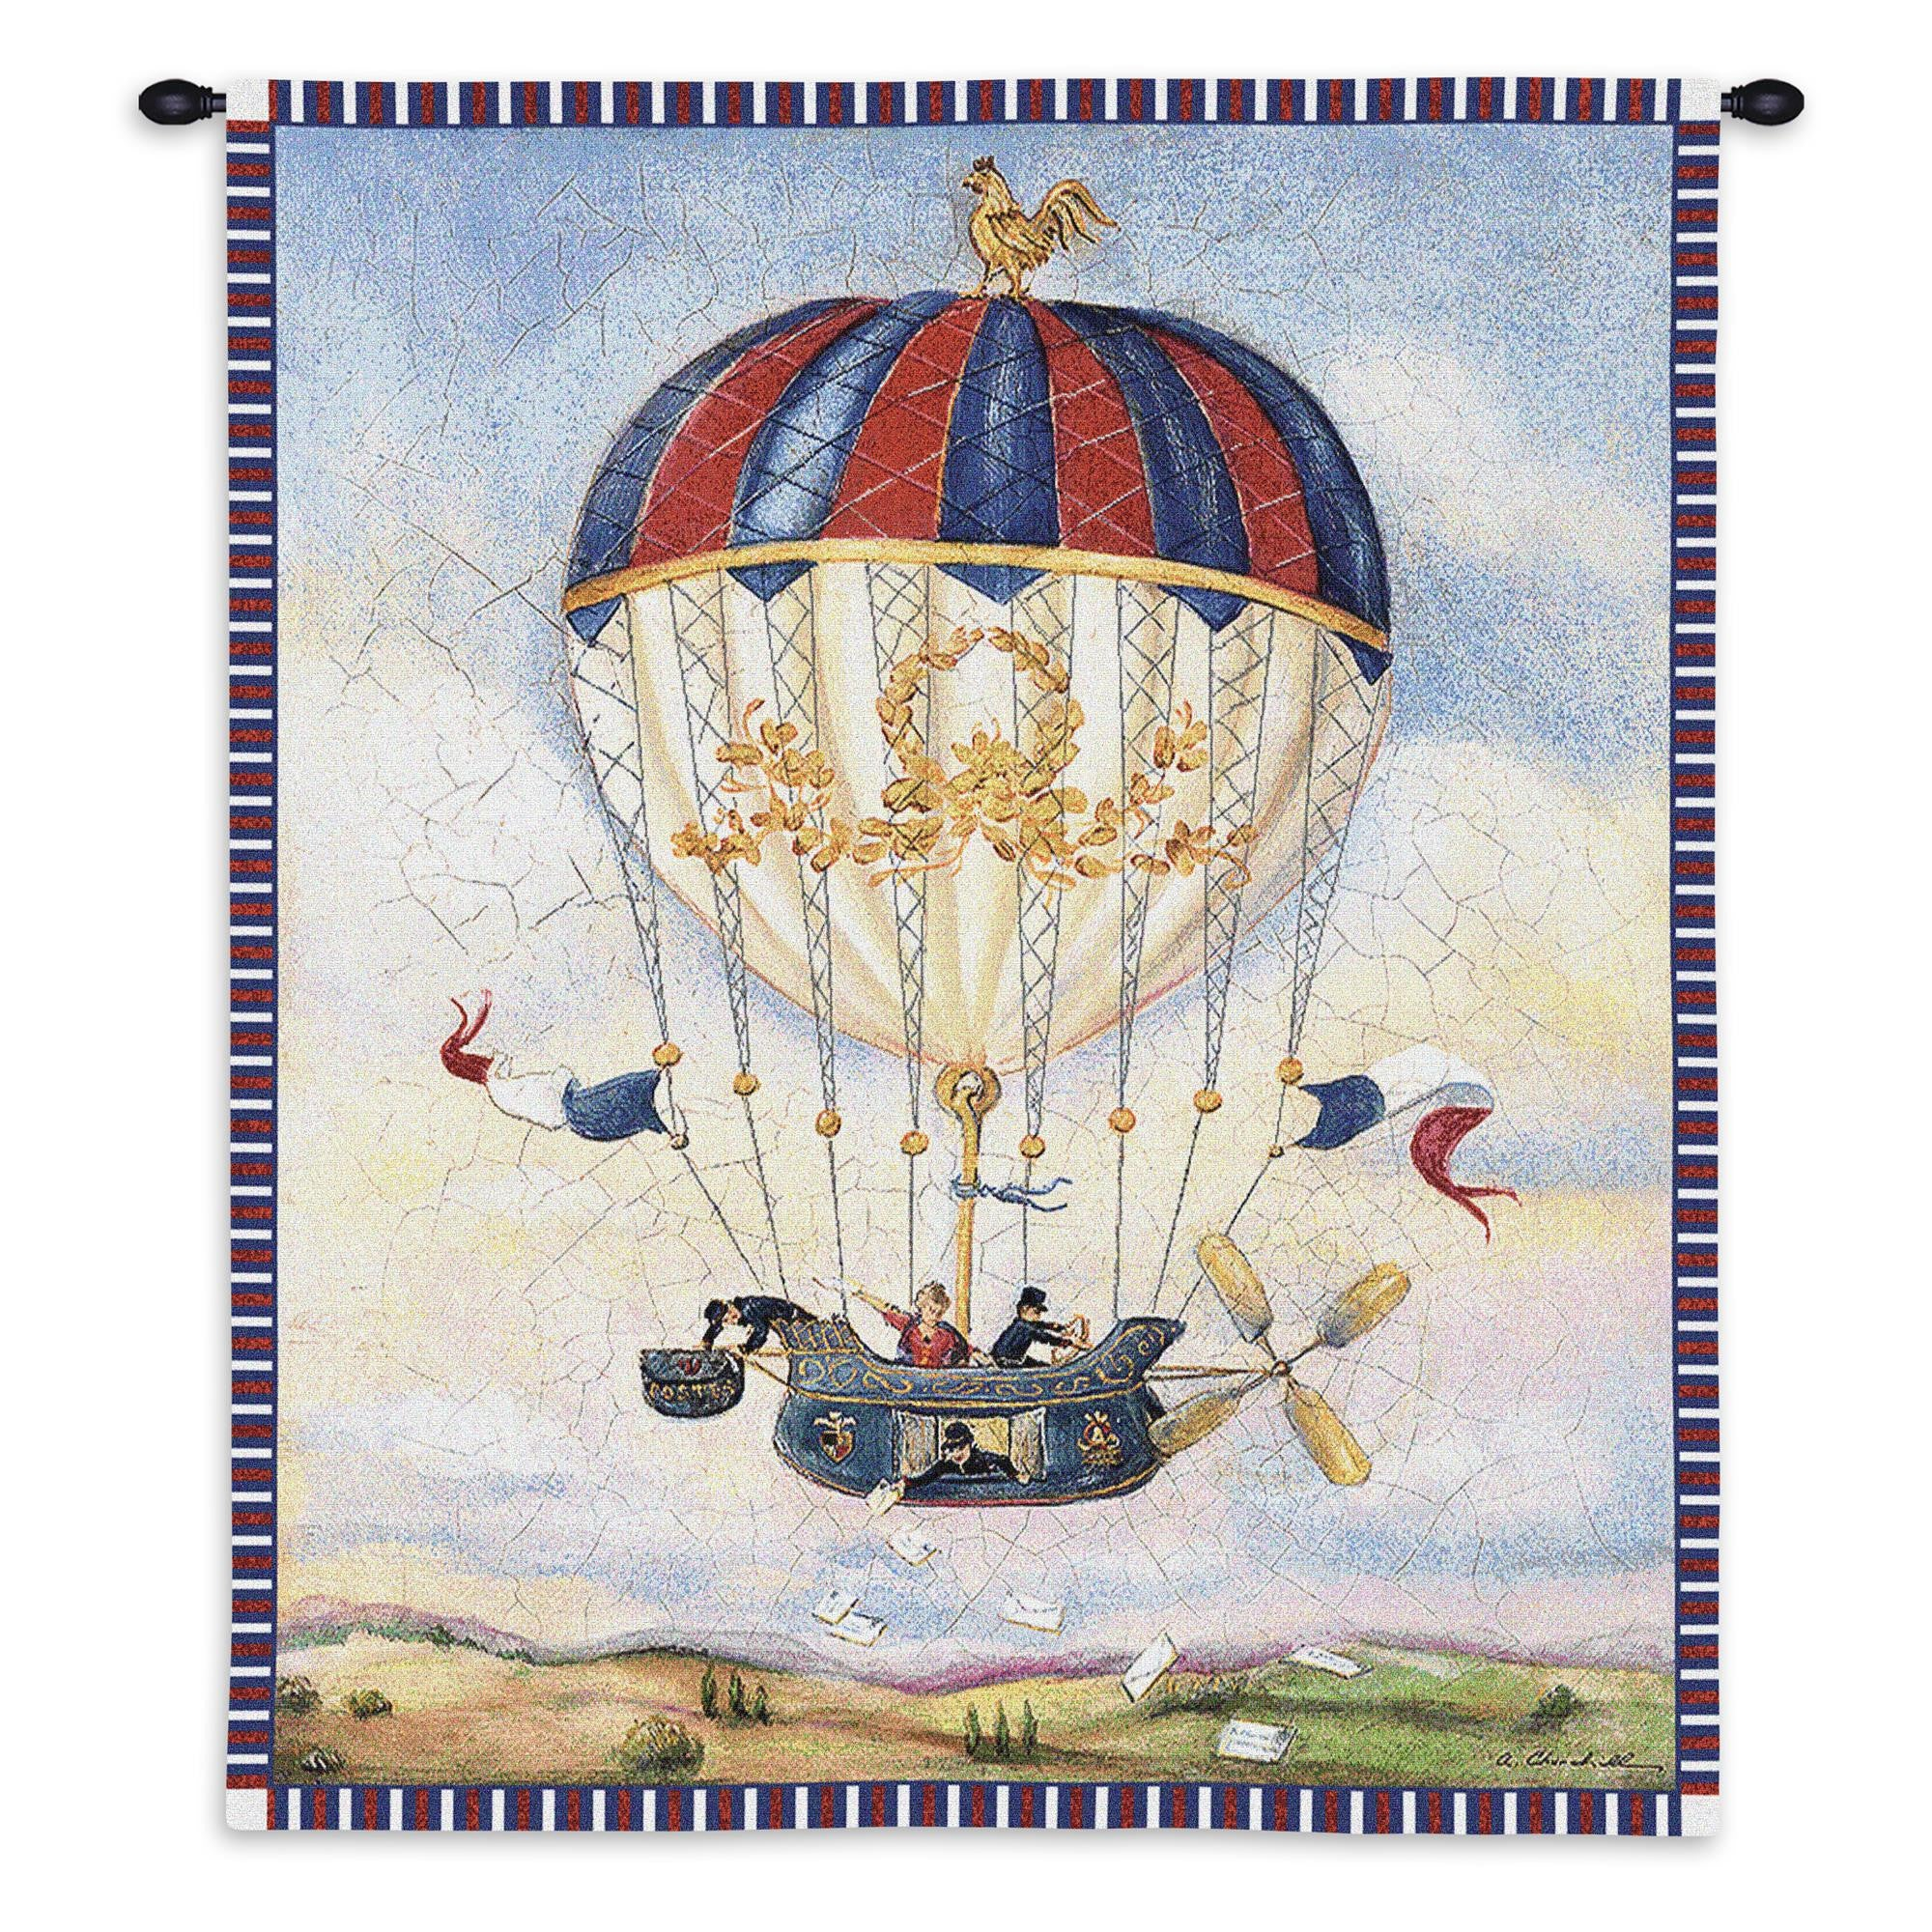 Mail Drop Balloon Festival Wall Hanging